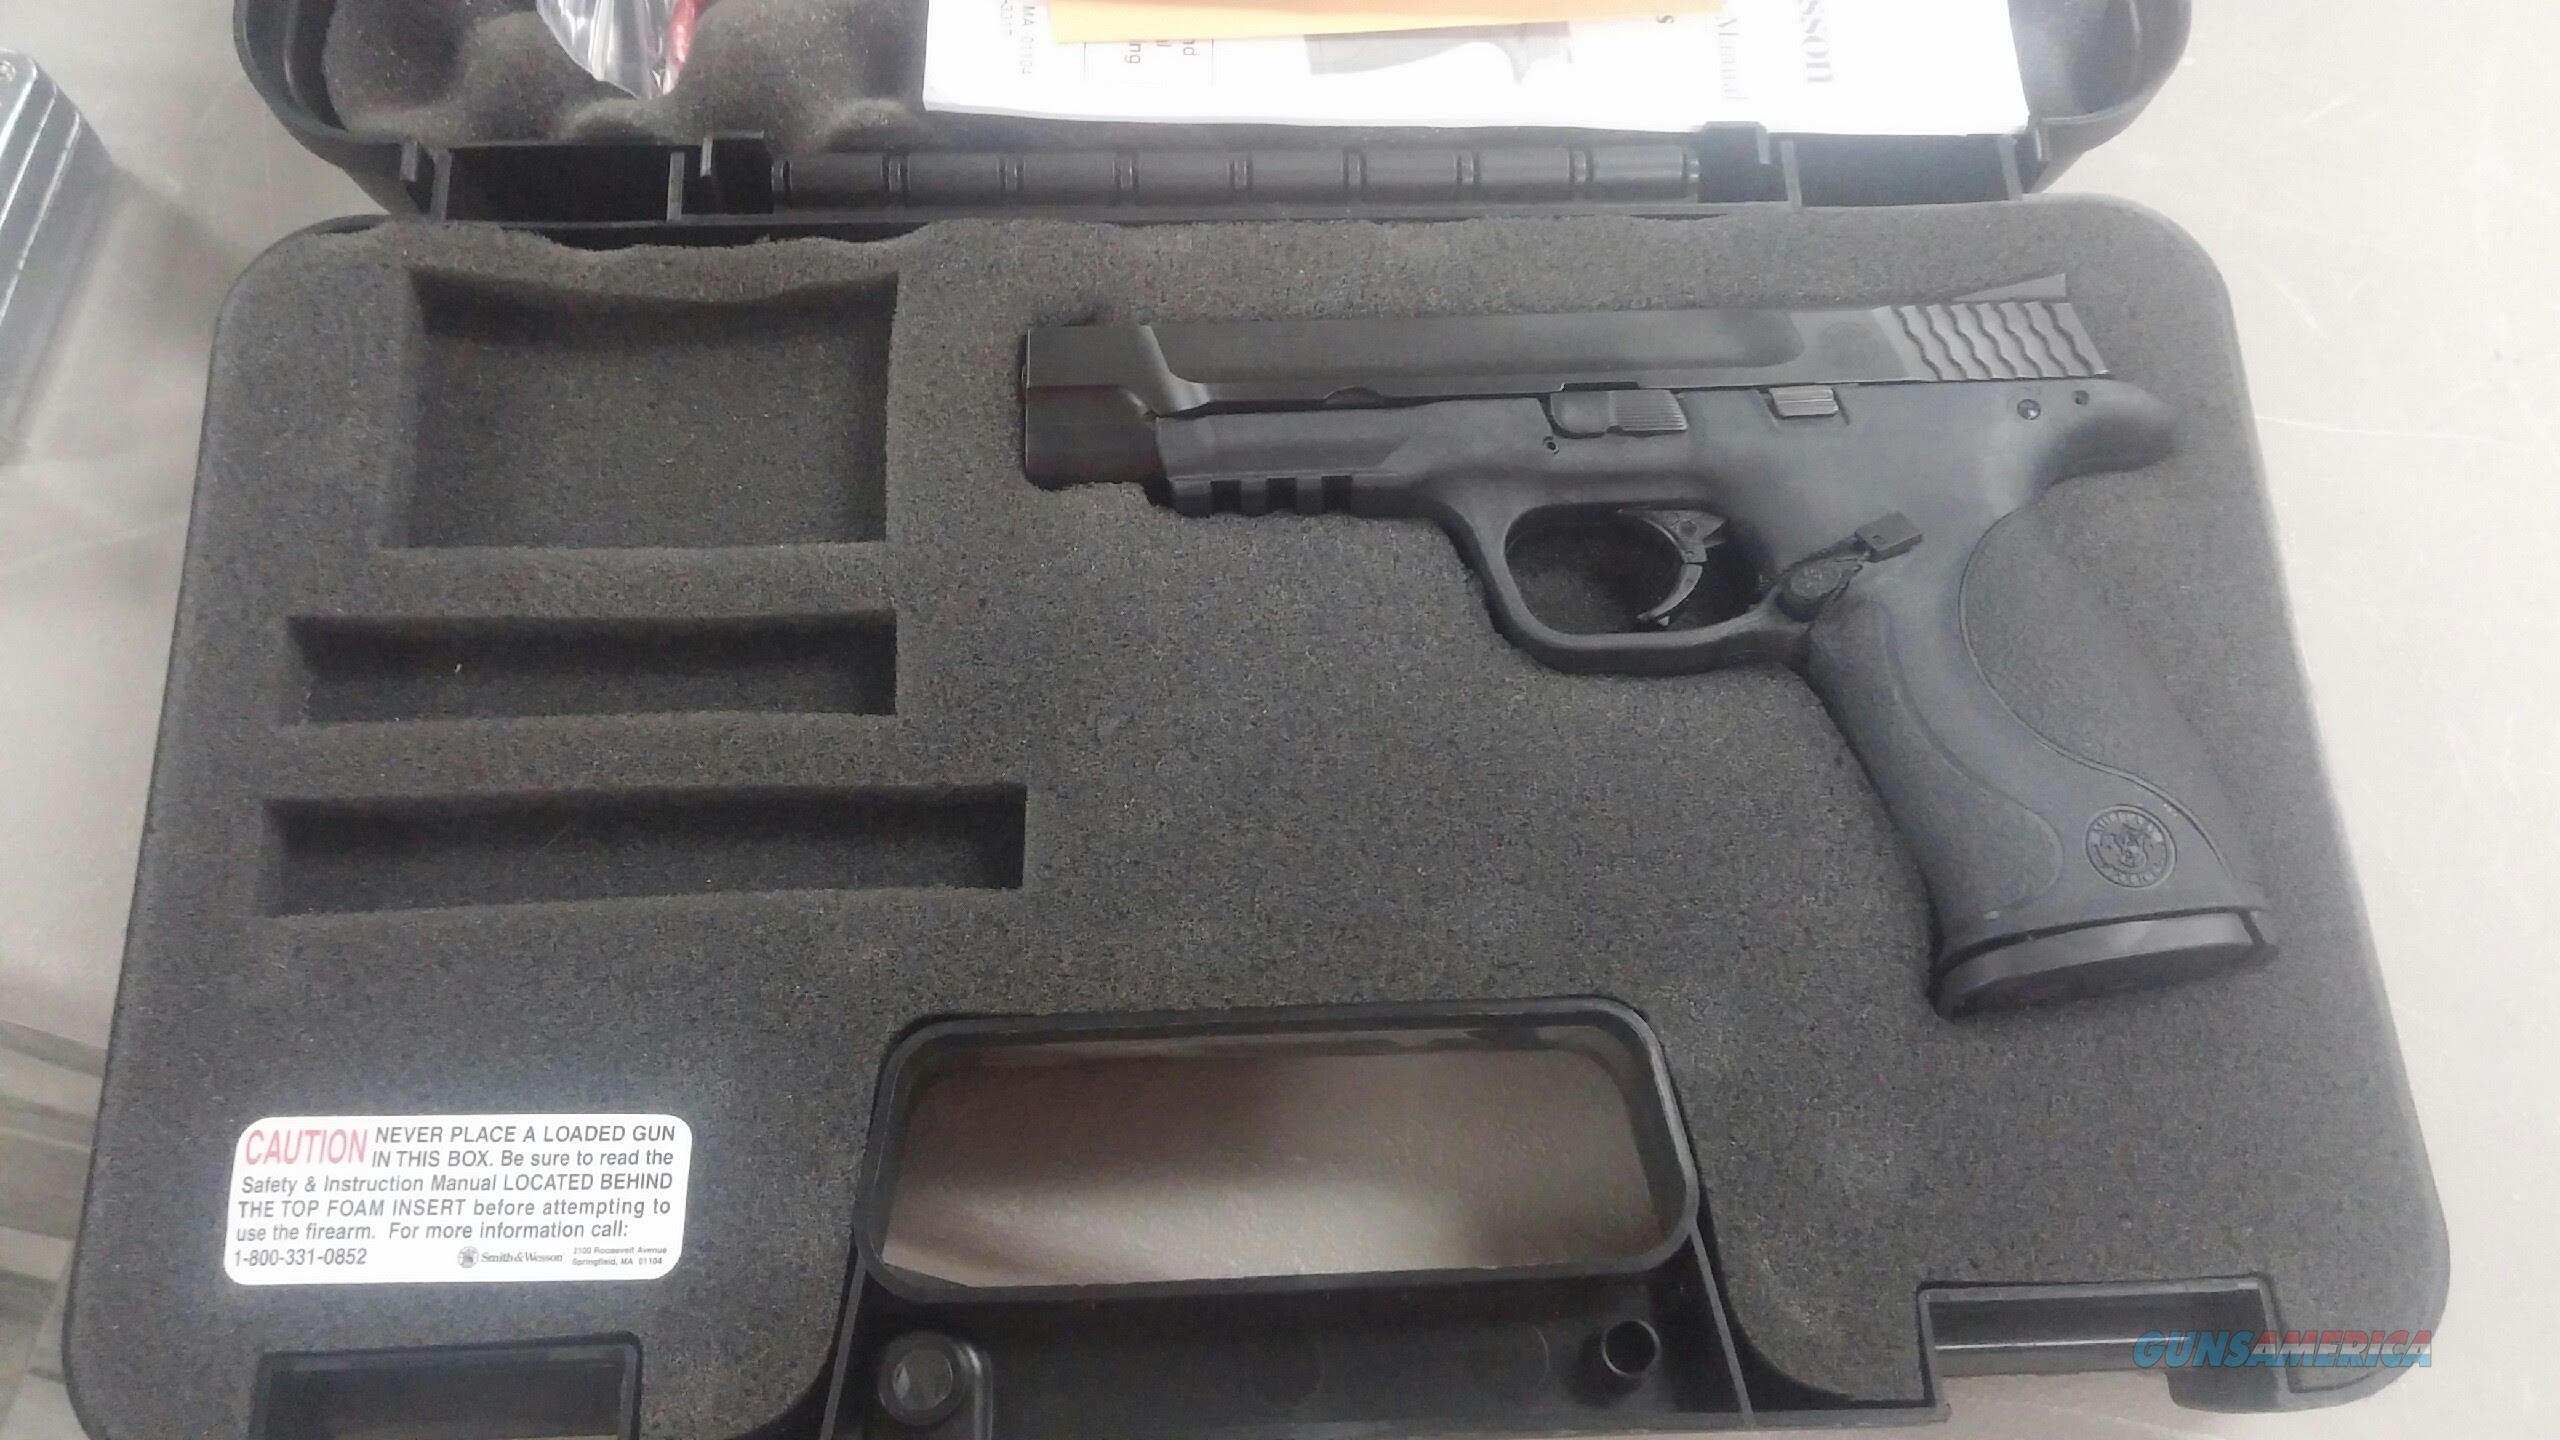 Used Smith & Wesson M&P9 Pro 9mm Pistol  Guns > Pistols > Smith & Wesson Pistols - Autos > Polymer Frame